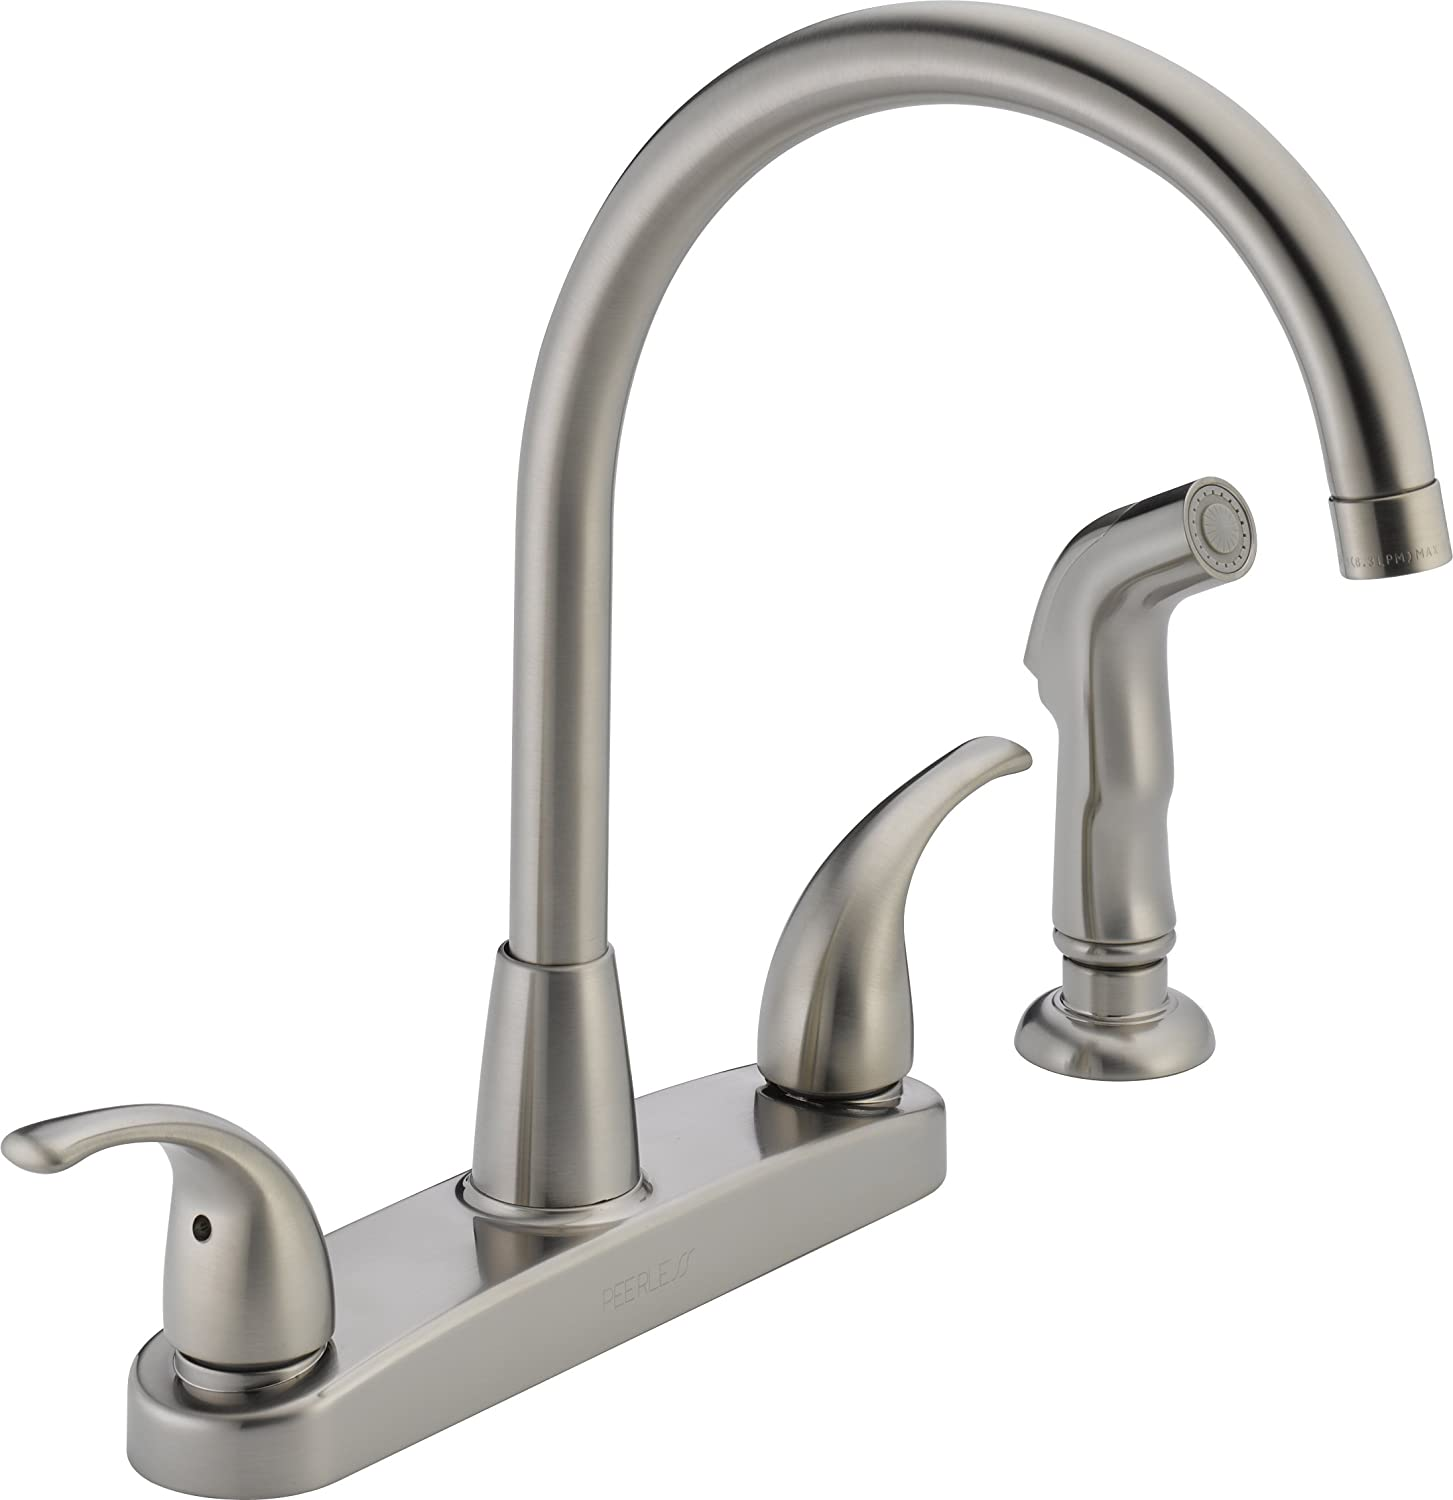 peerless p299578lf choice two handle kitchen faucet chrome peerless p299578lf choice two handle kitchen faucet chrome touch on kitchen sink faucets amazon com